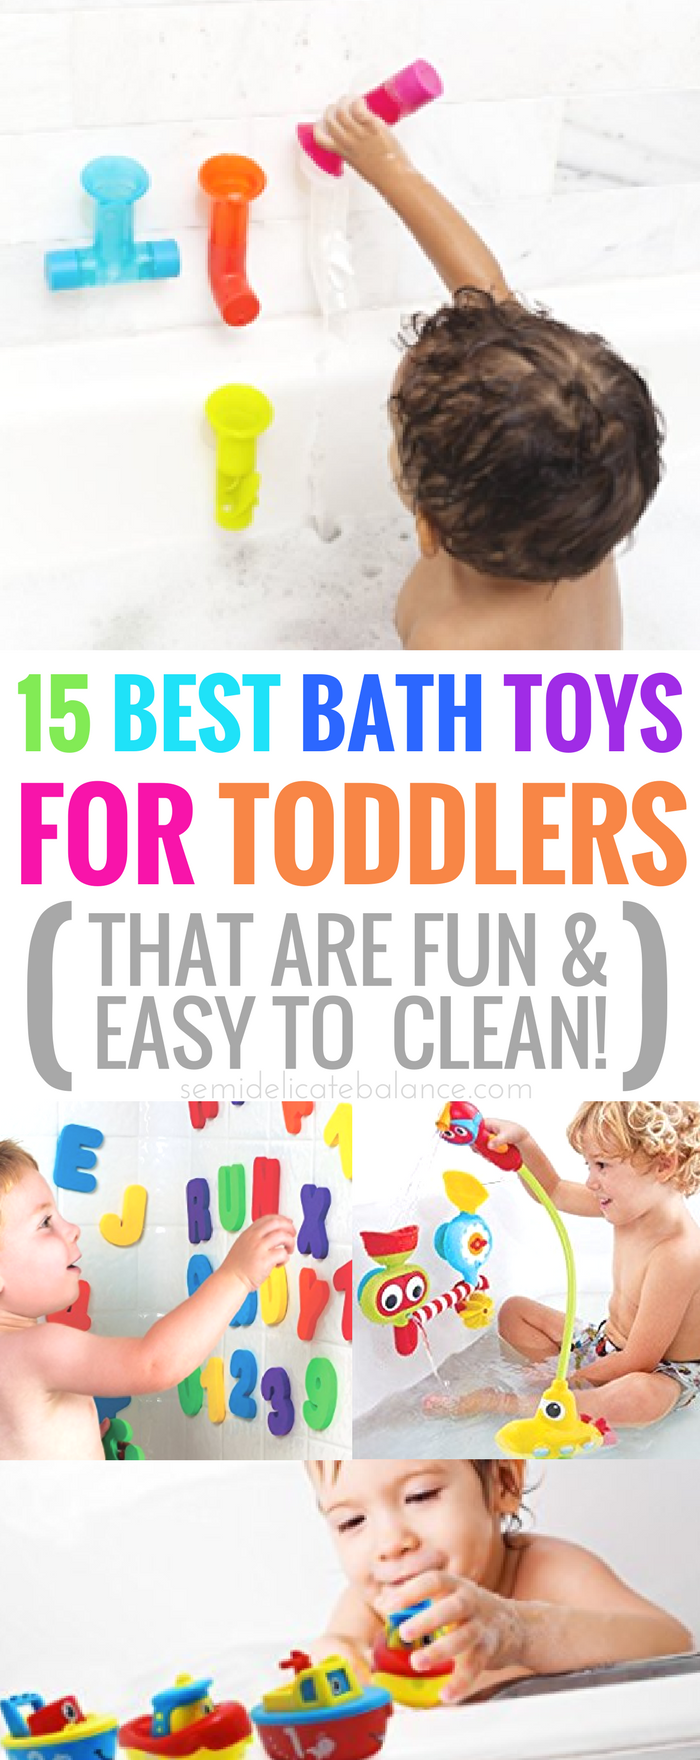 15 best bath toys ideas for toddlers that are fun and easy to clean